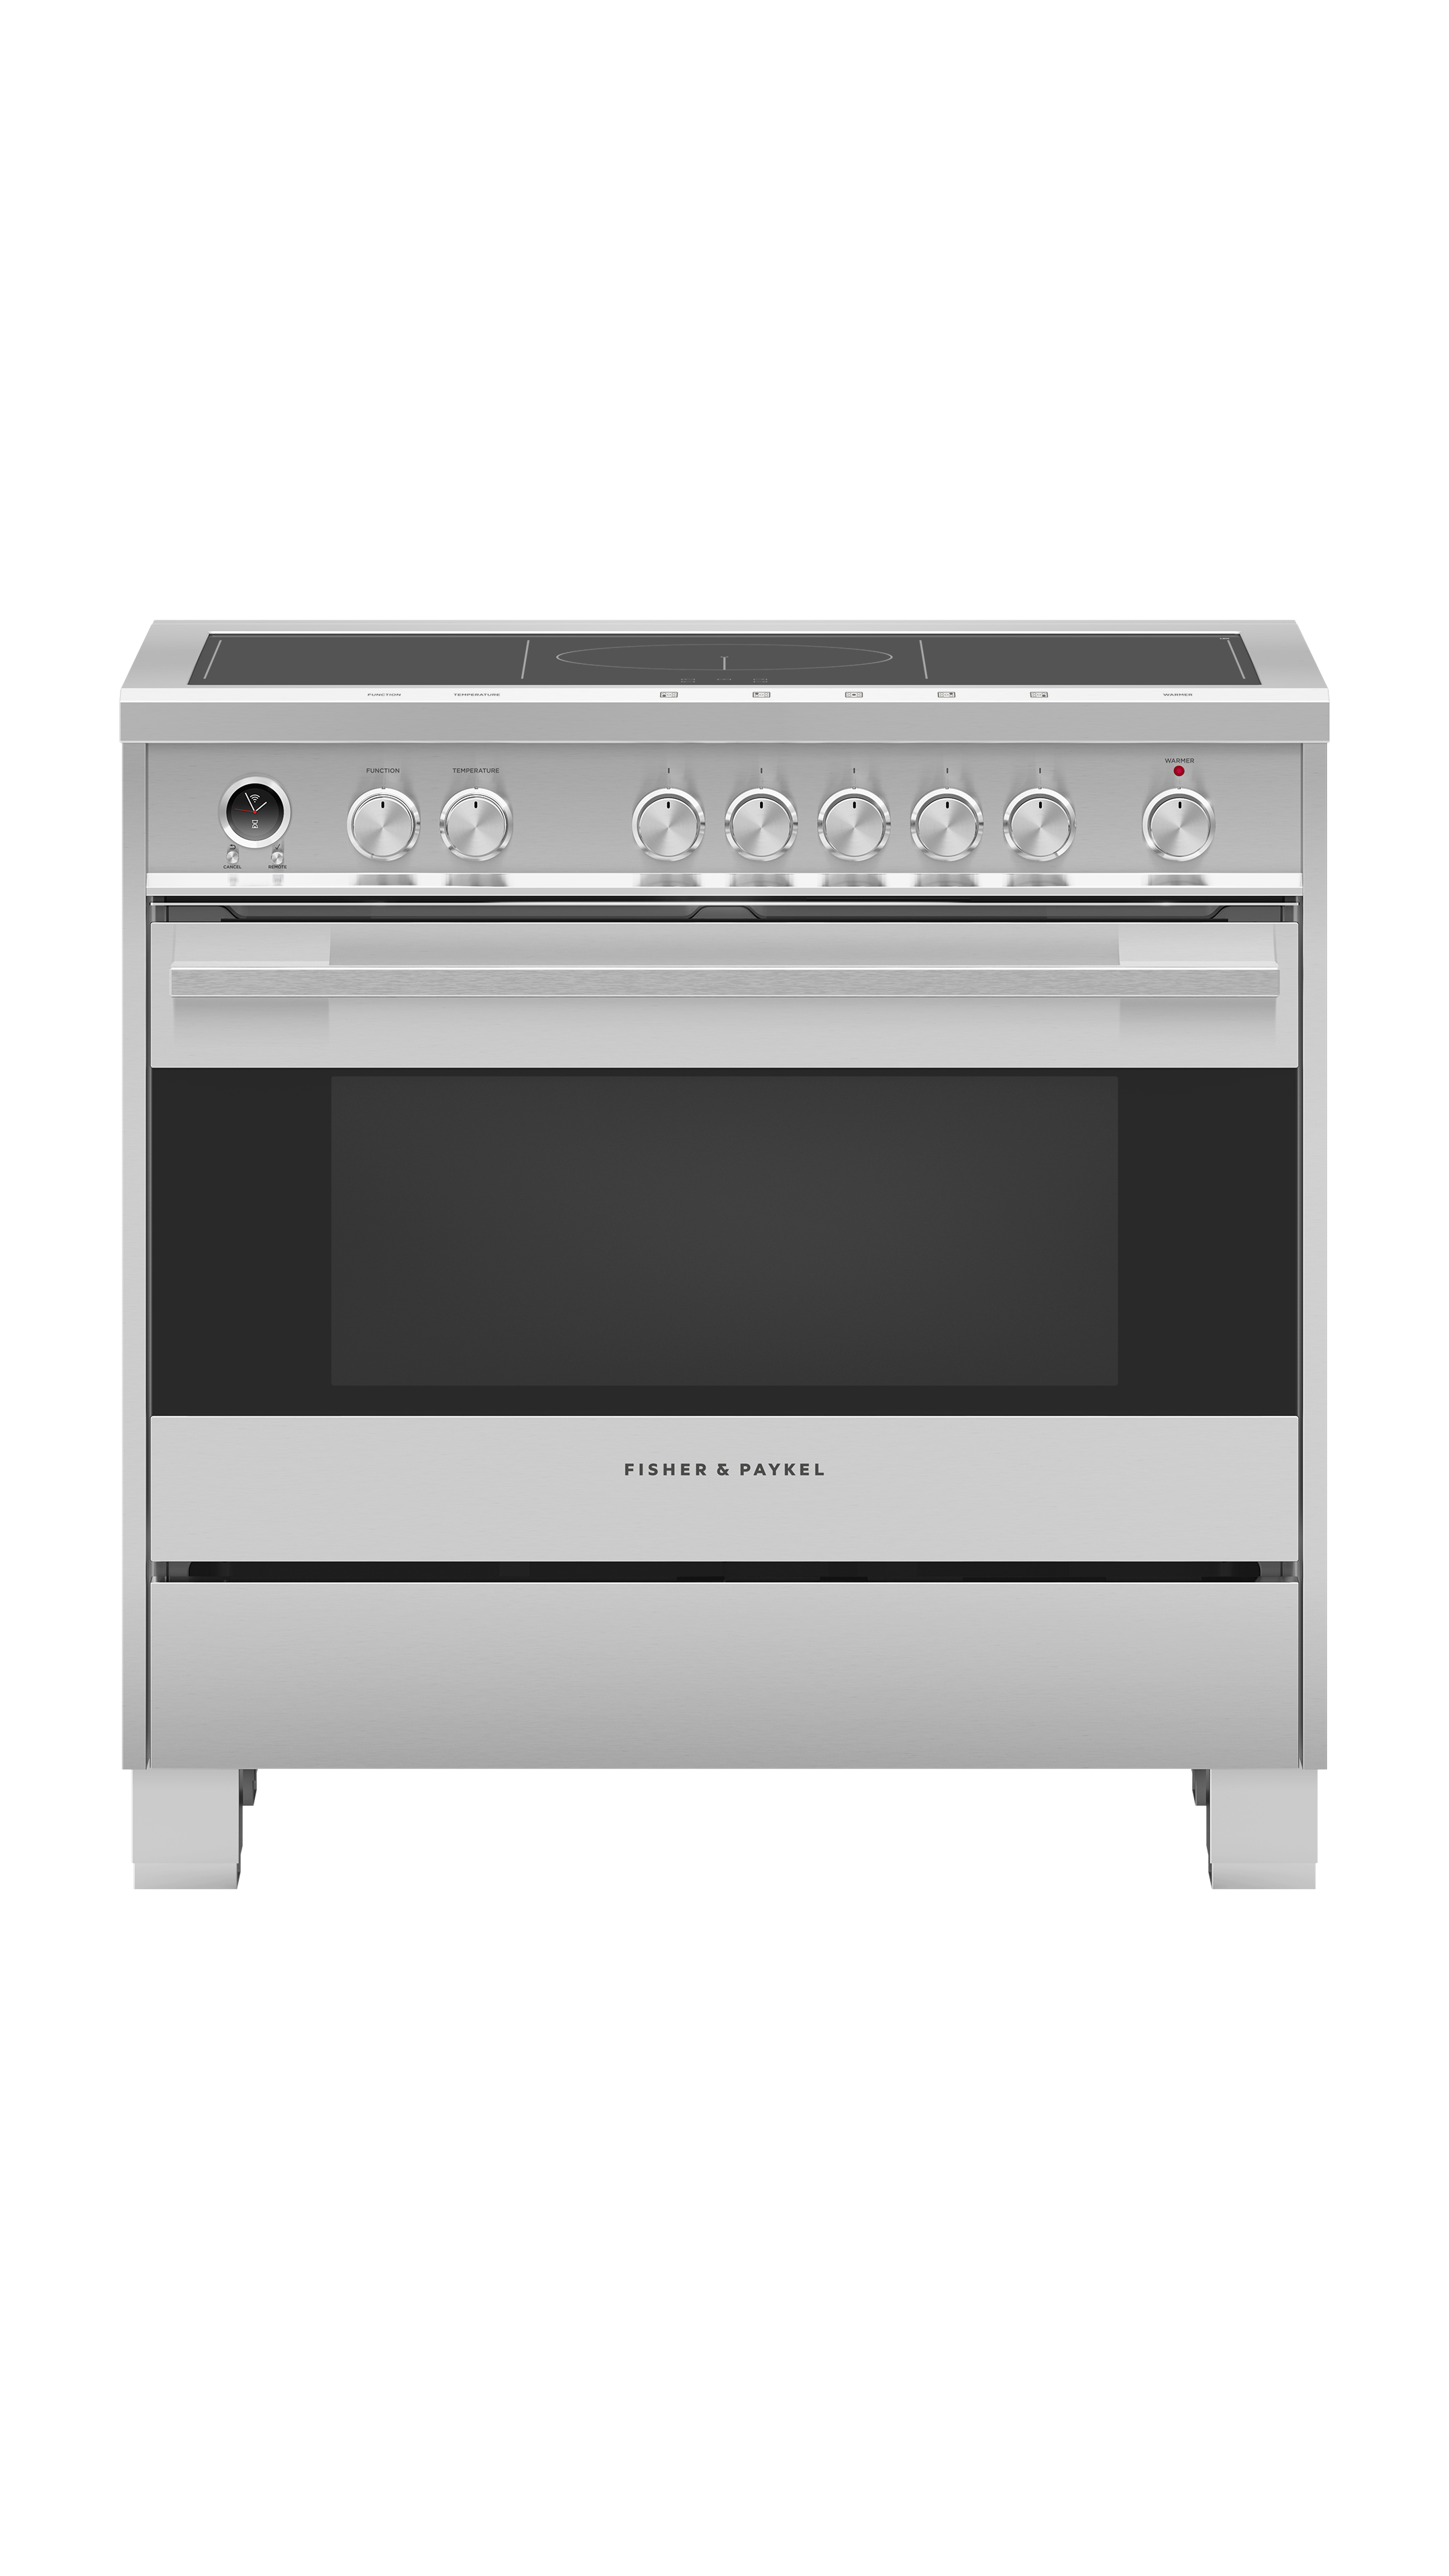 """Model: OR36SDI6X1   Fisher and Paykel Induction Range 36"""", Self-Cleaning"""